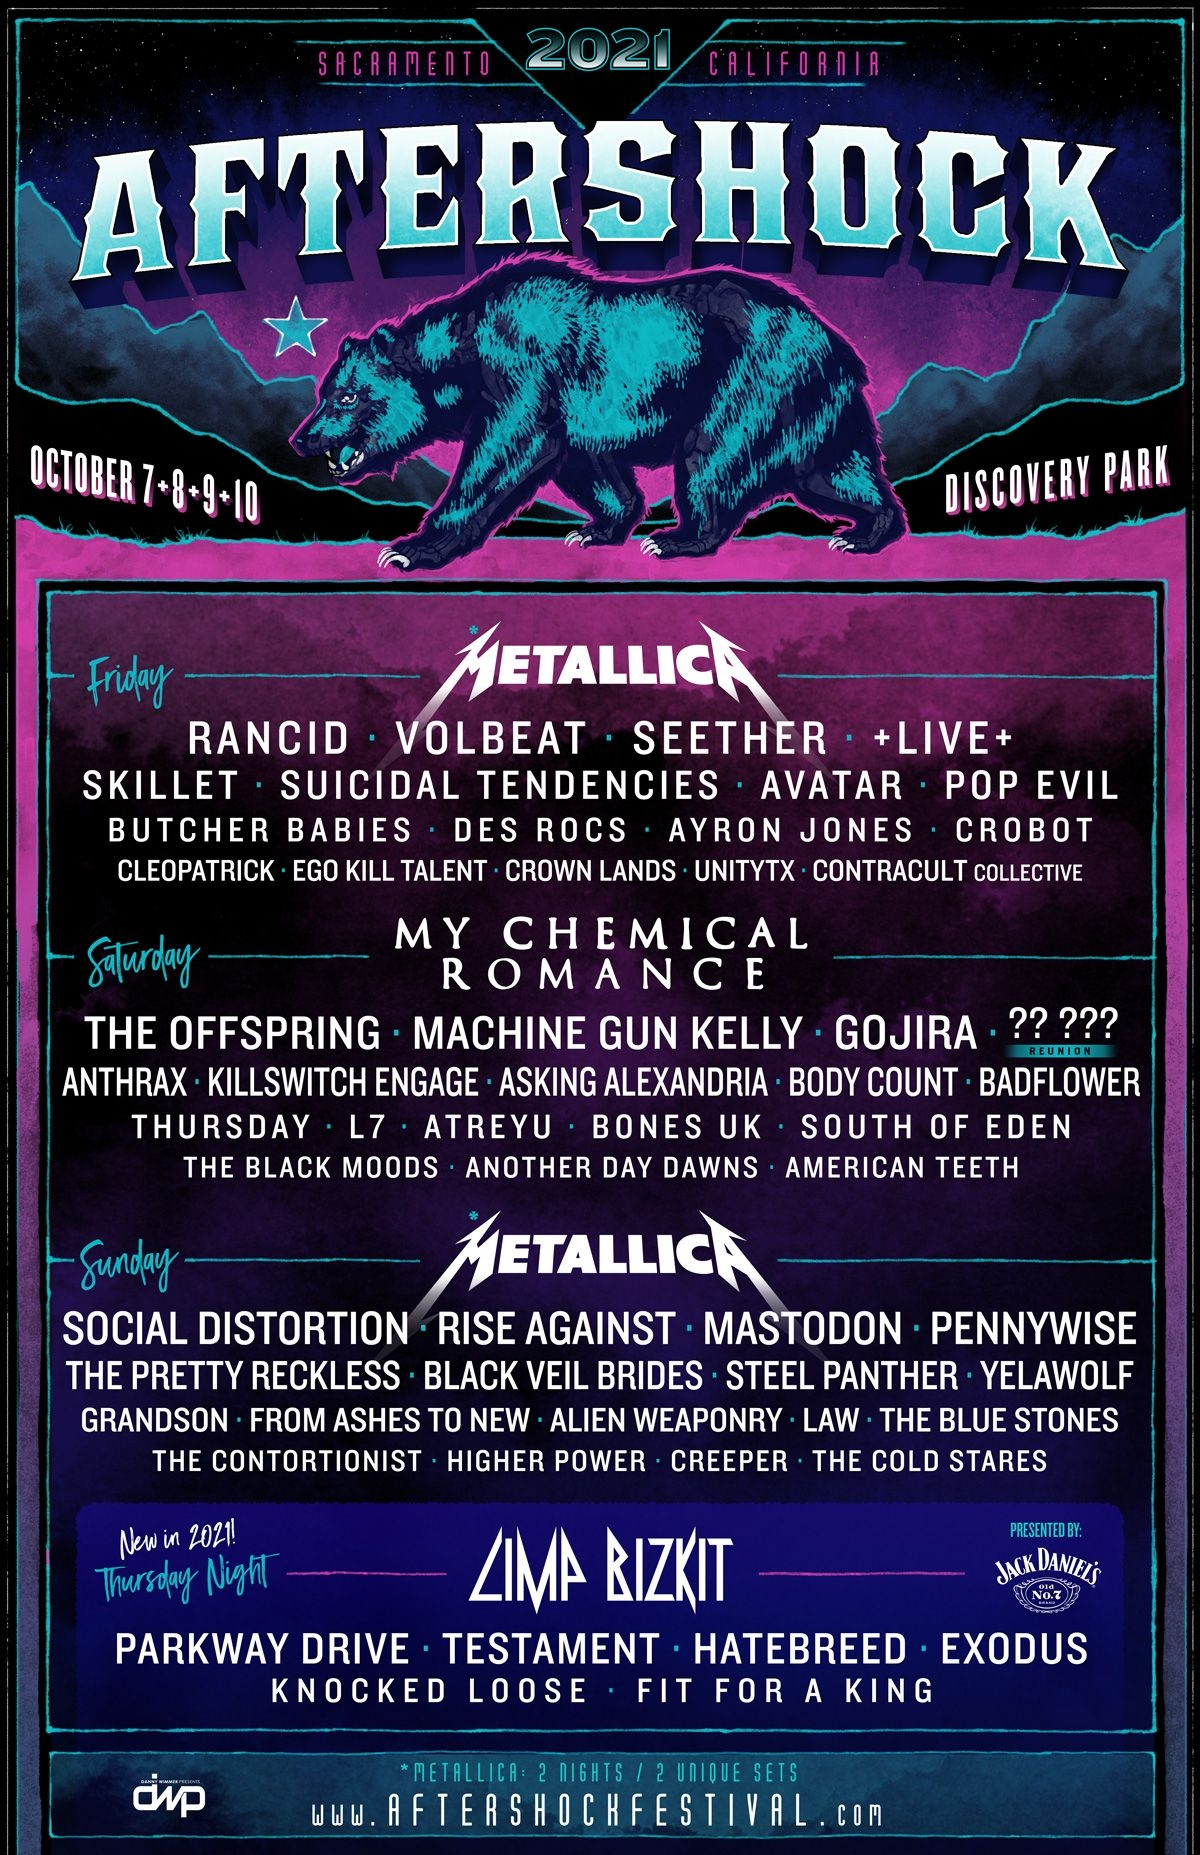 2021 Aftershock Festival Lineup Announced But Will It